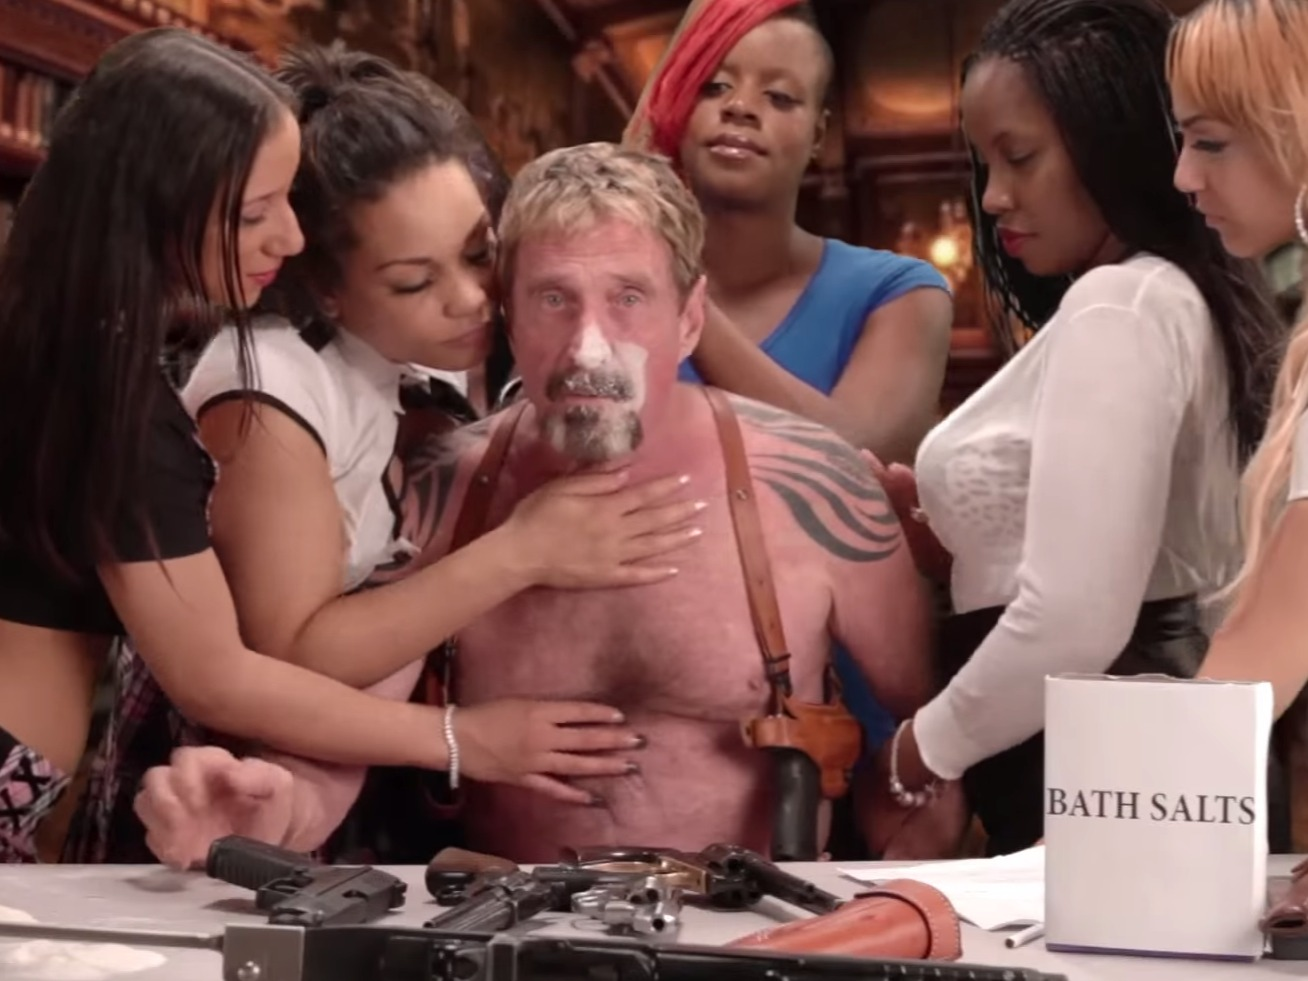 the-insane-life-of-former-fugitive-and-eccentric-cybersecurity-legend-john-mcafee